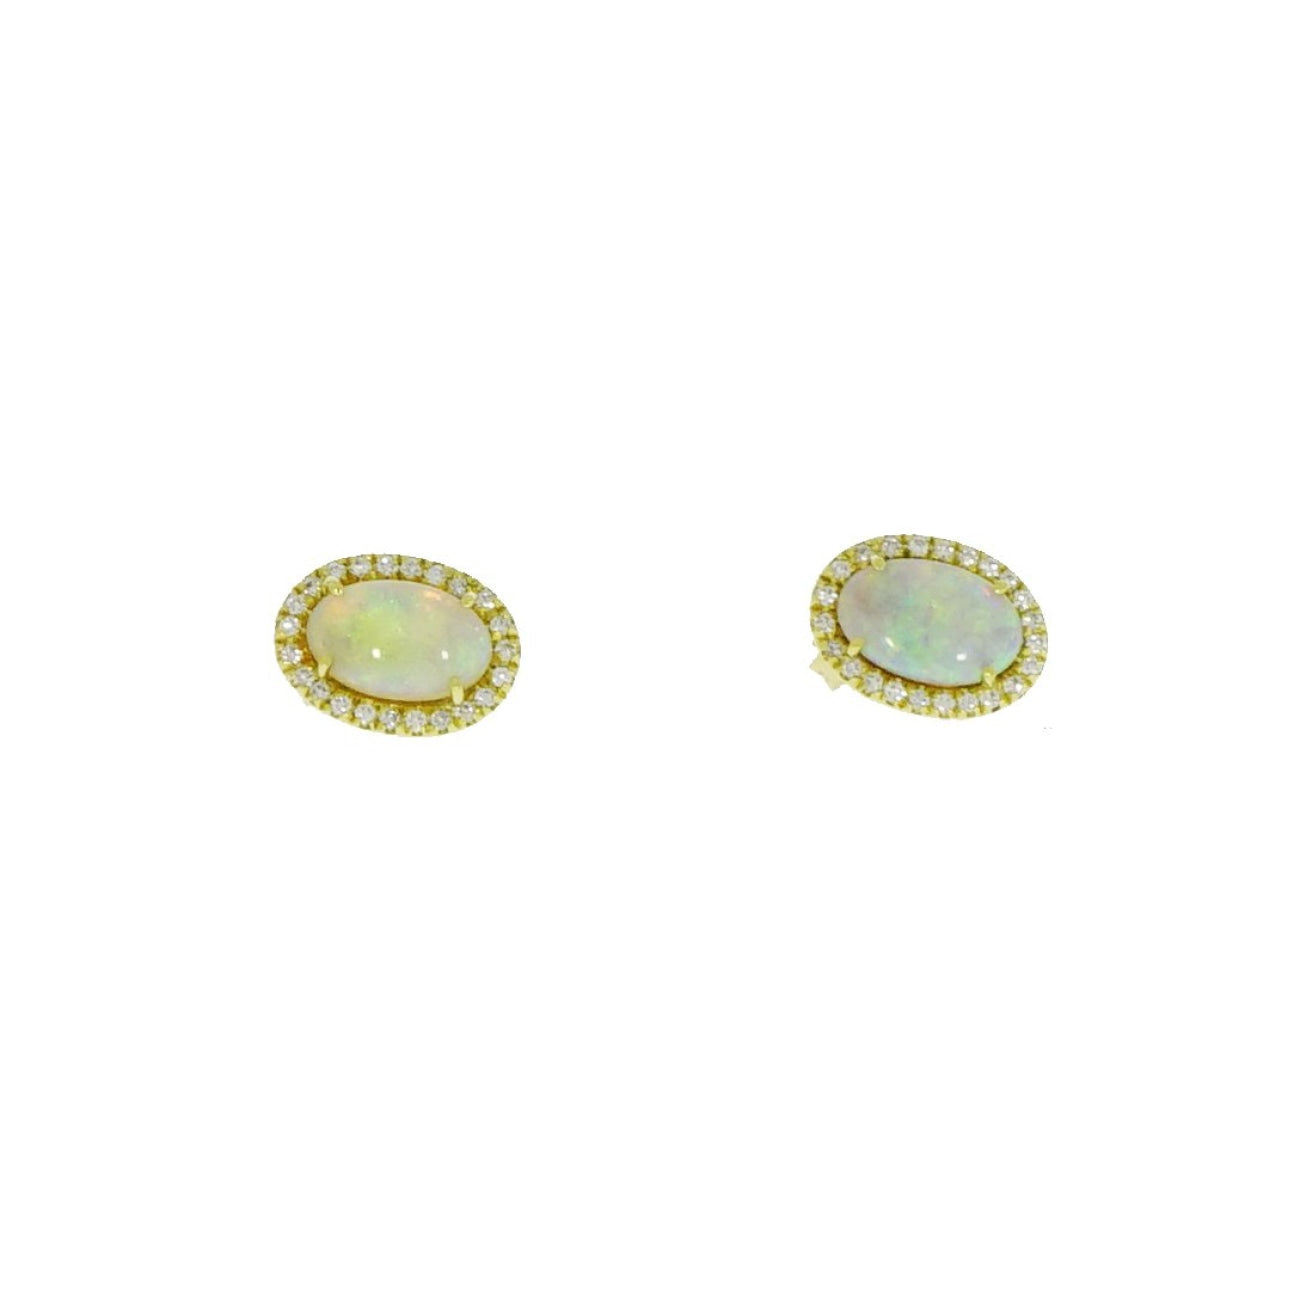 Lauren K Jewelry - Opal & Diamond Yellow Gold Stud Earrings | Manfredi Jewels